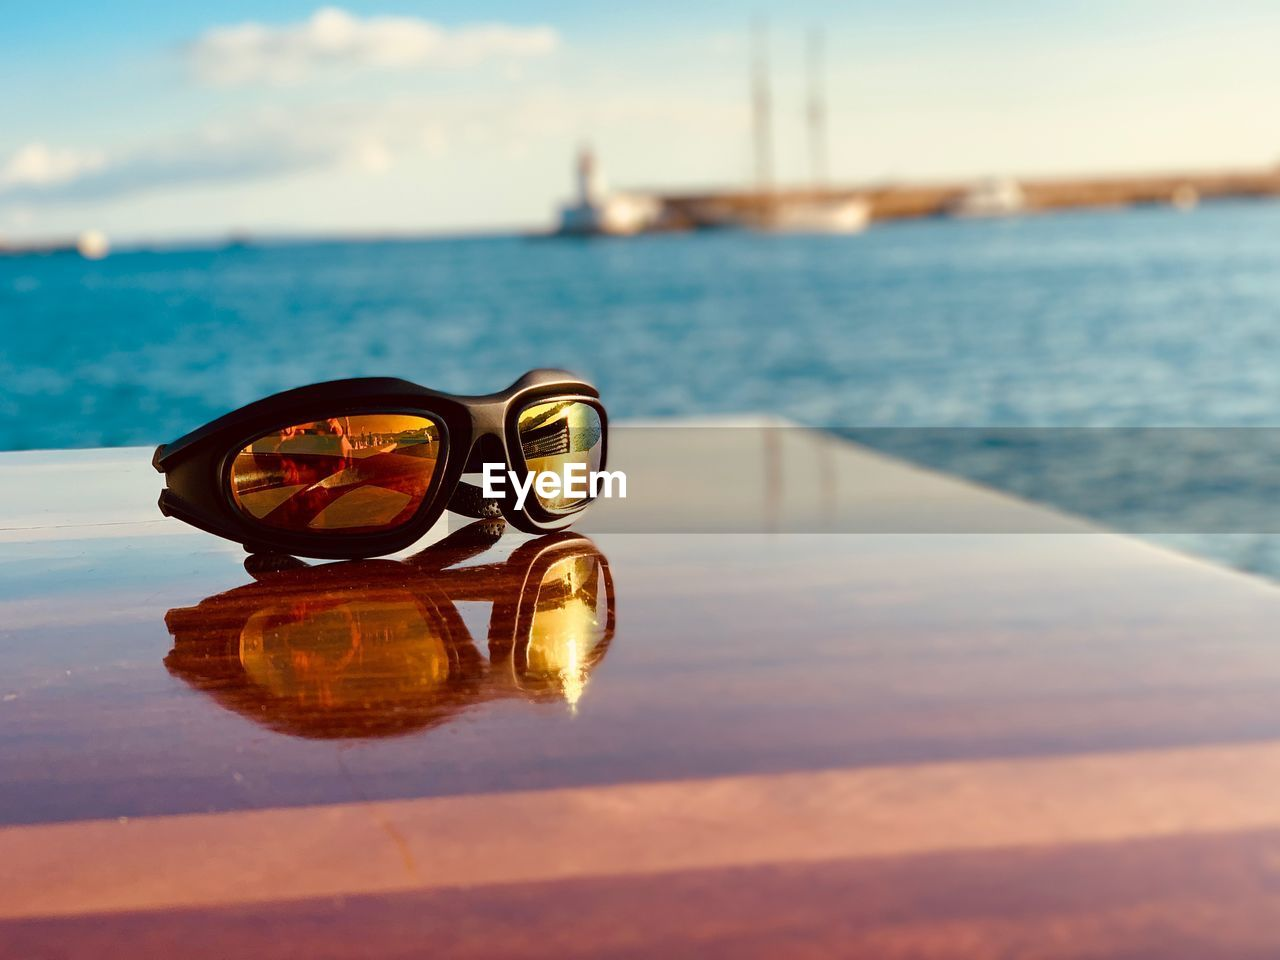 water, glasses, sea, sunglasses, reflection, fashion, sky, nature, beach, land, sunlight, no people, scenics - nature, cloud - sky, day, close-up, security, focus on foreground, outdoors, personal accessory, horizon over water, eyewear